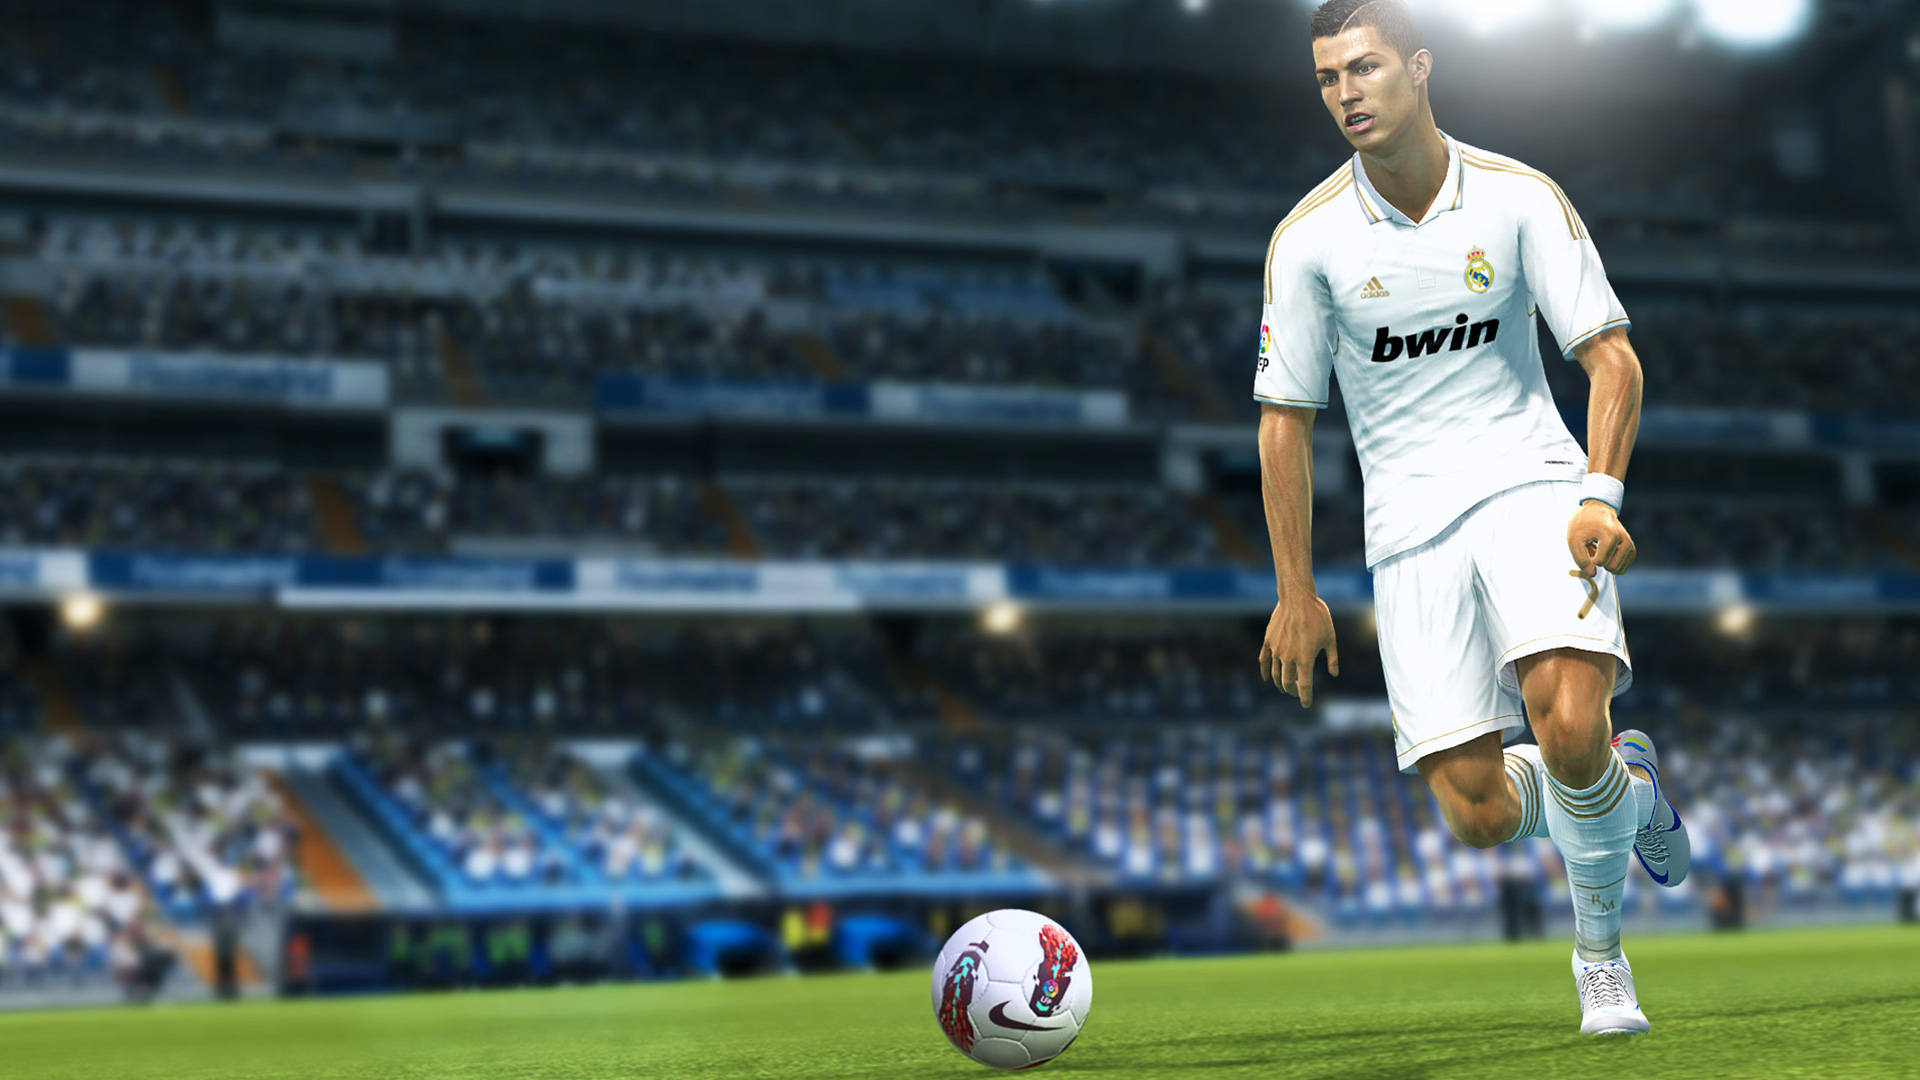 Pro Evolution Soccer 2013 Wallpaper in 1920x1080